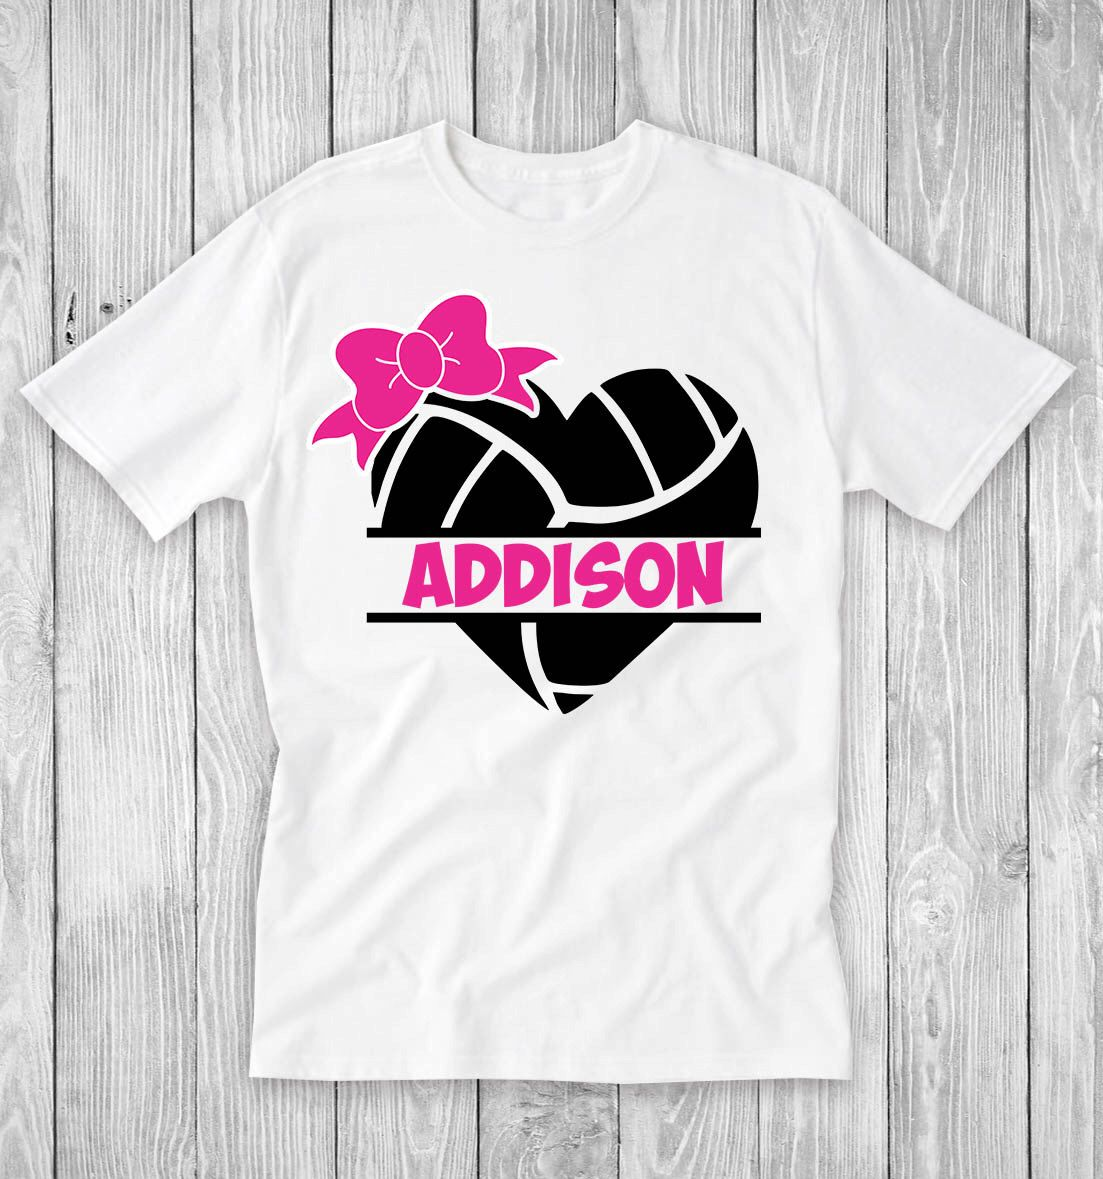 Volleyball Heart Personalized T Shirt Girls Volleyball Etsy Volleyball Mom Shirts Design Volleyball Tshirt Designs Volleyball Mom Shirts